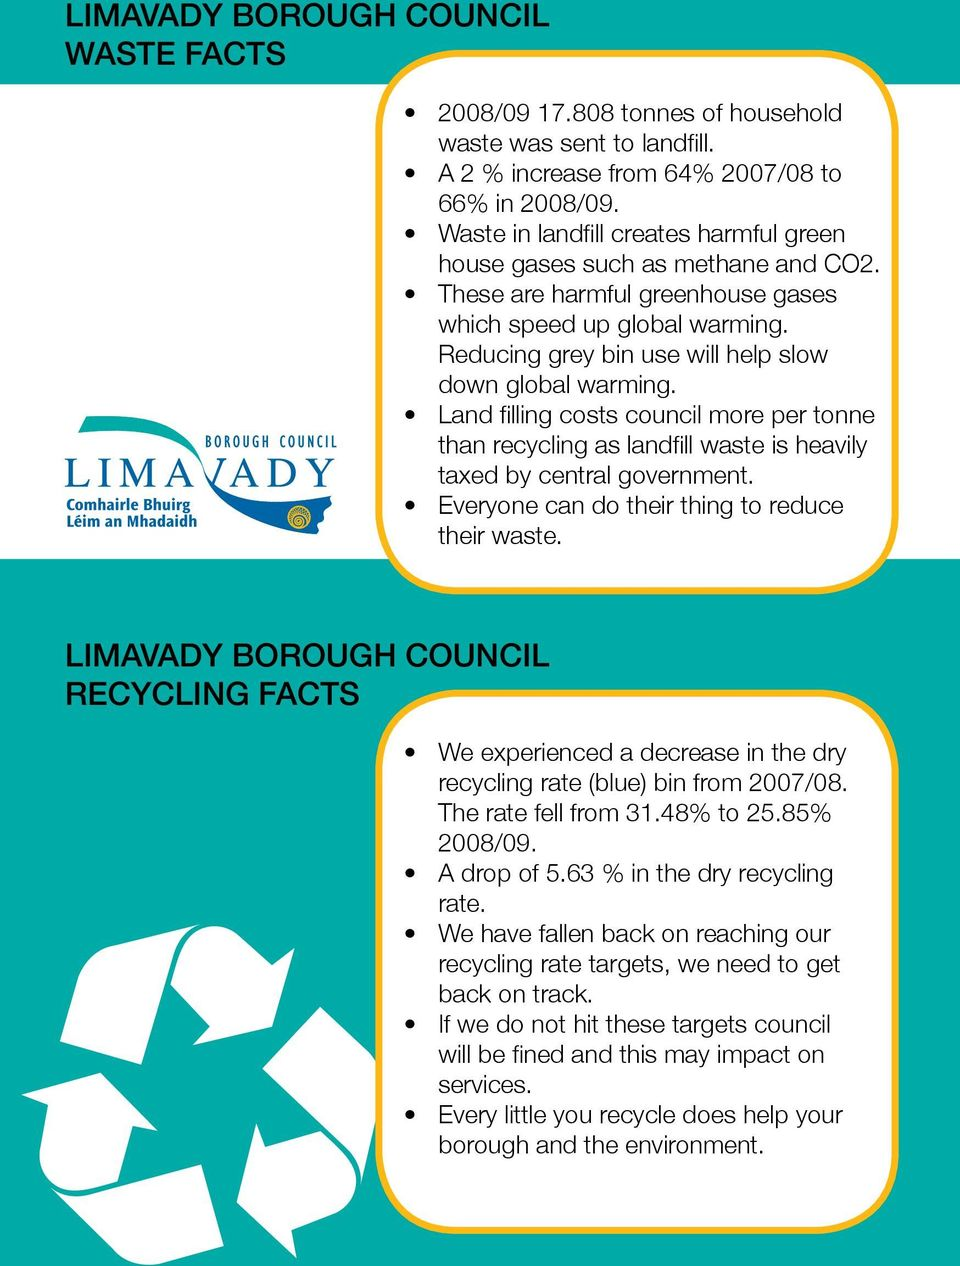 Land filling costs council more per tonne than recycling as landfill waste is heavily taxed by central government. Everyone can do their thing to reduce their waste.